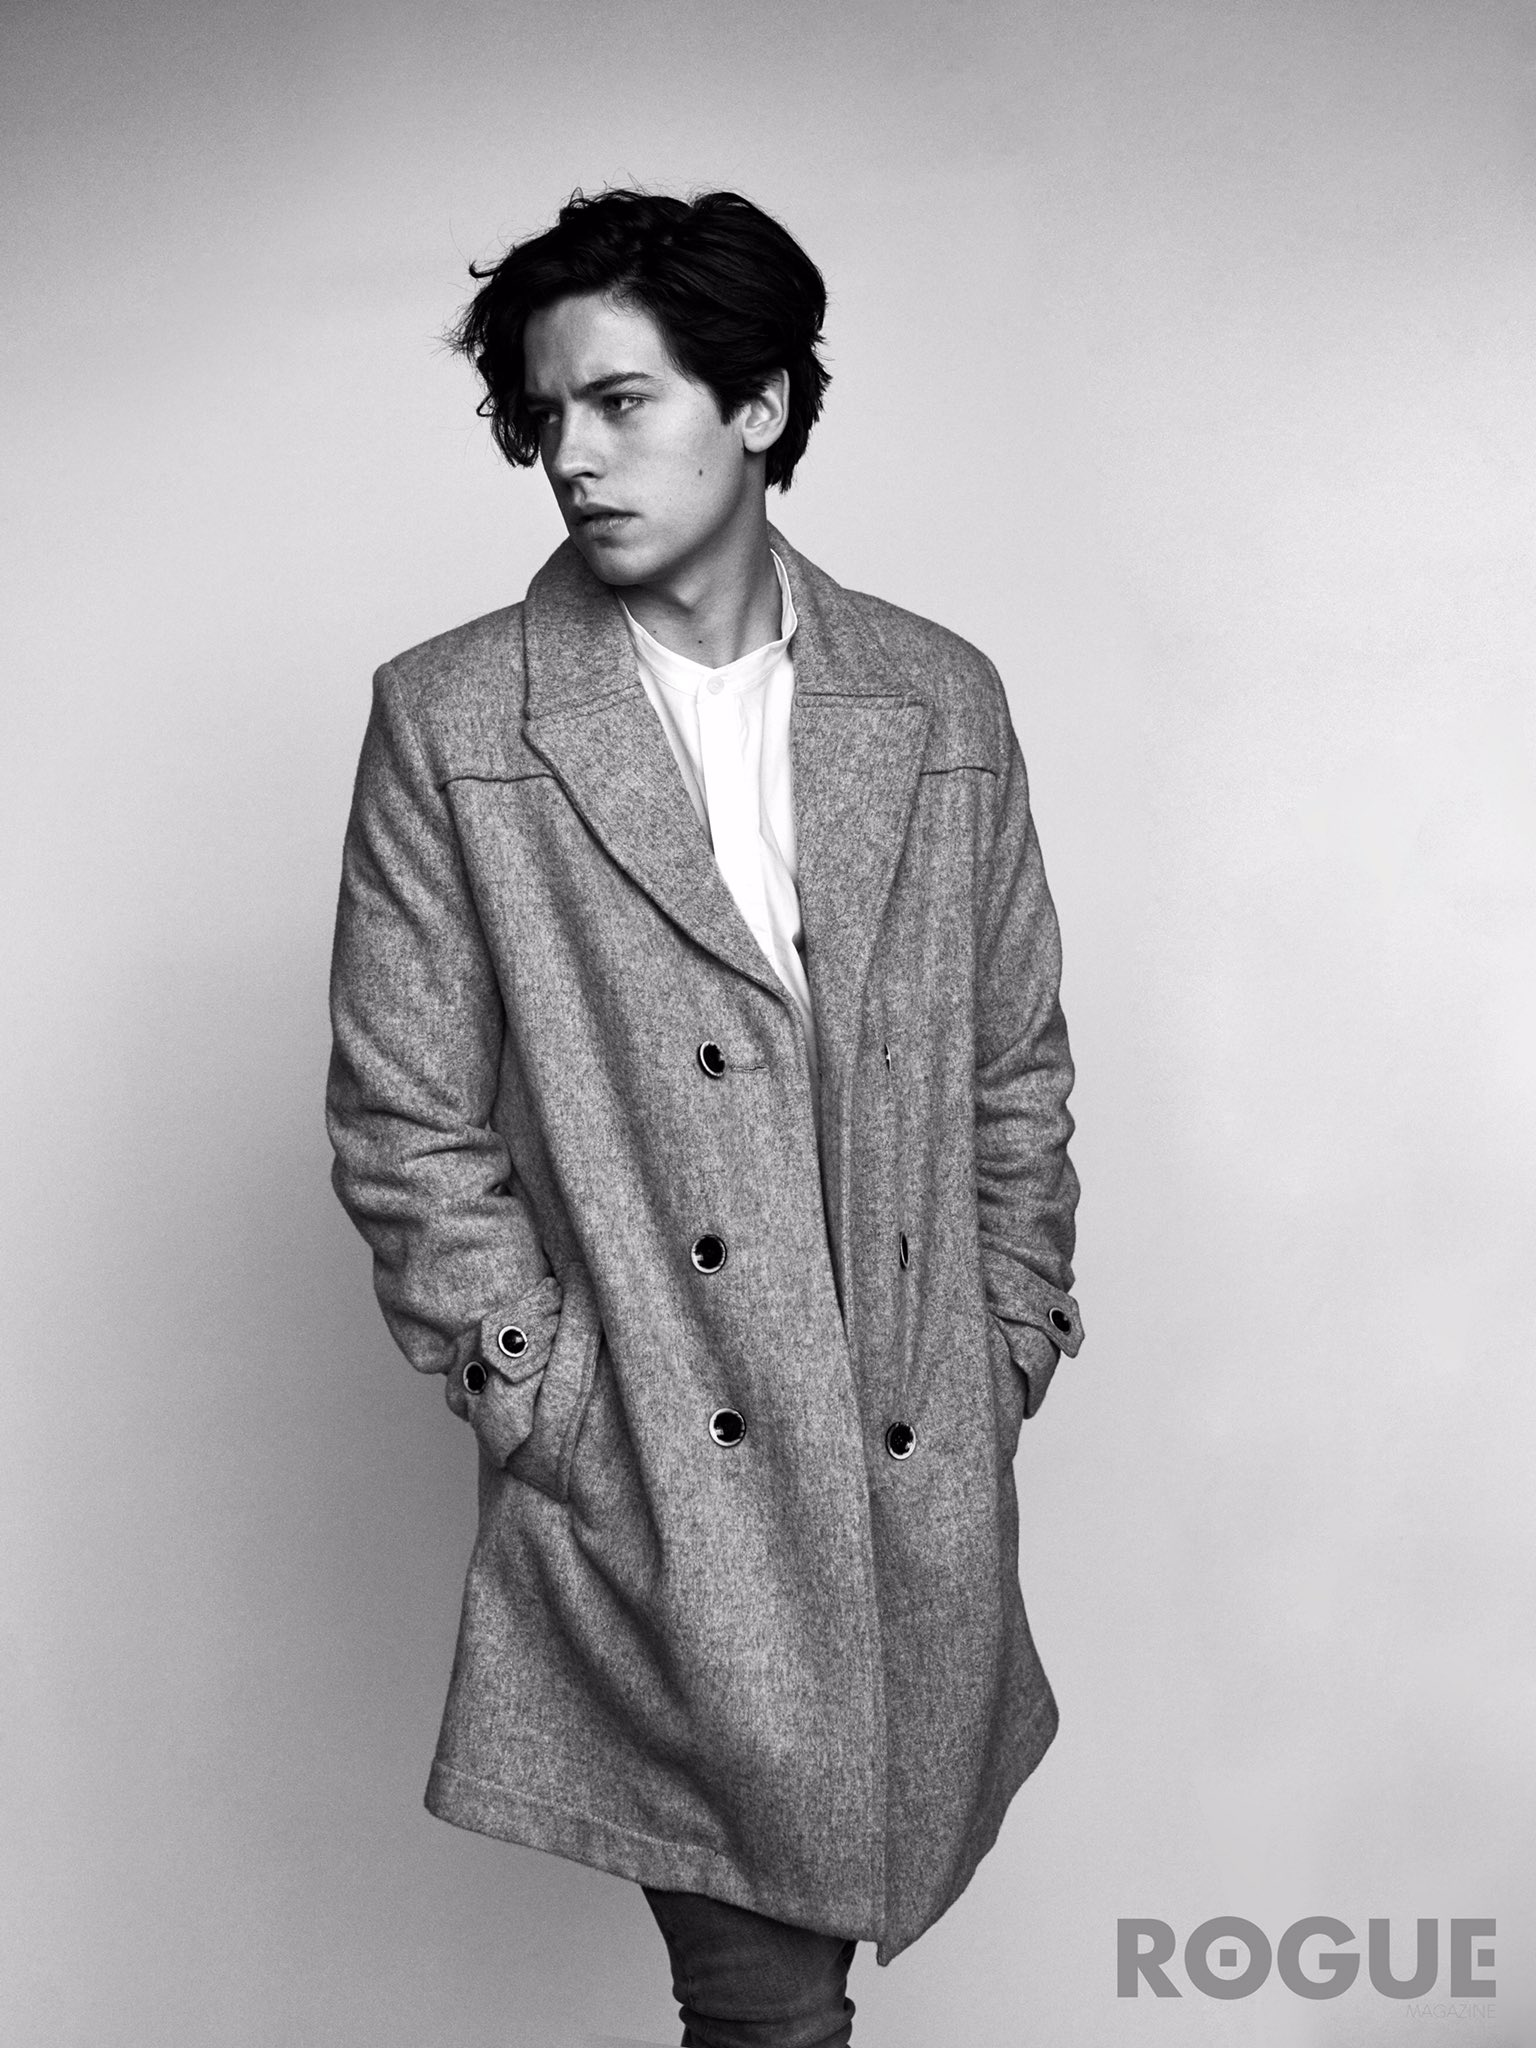 large photos of cole sprouse body